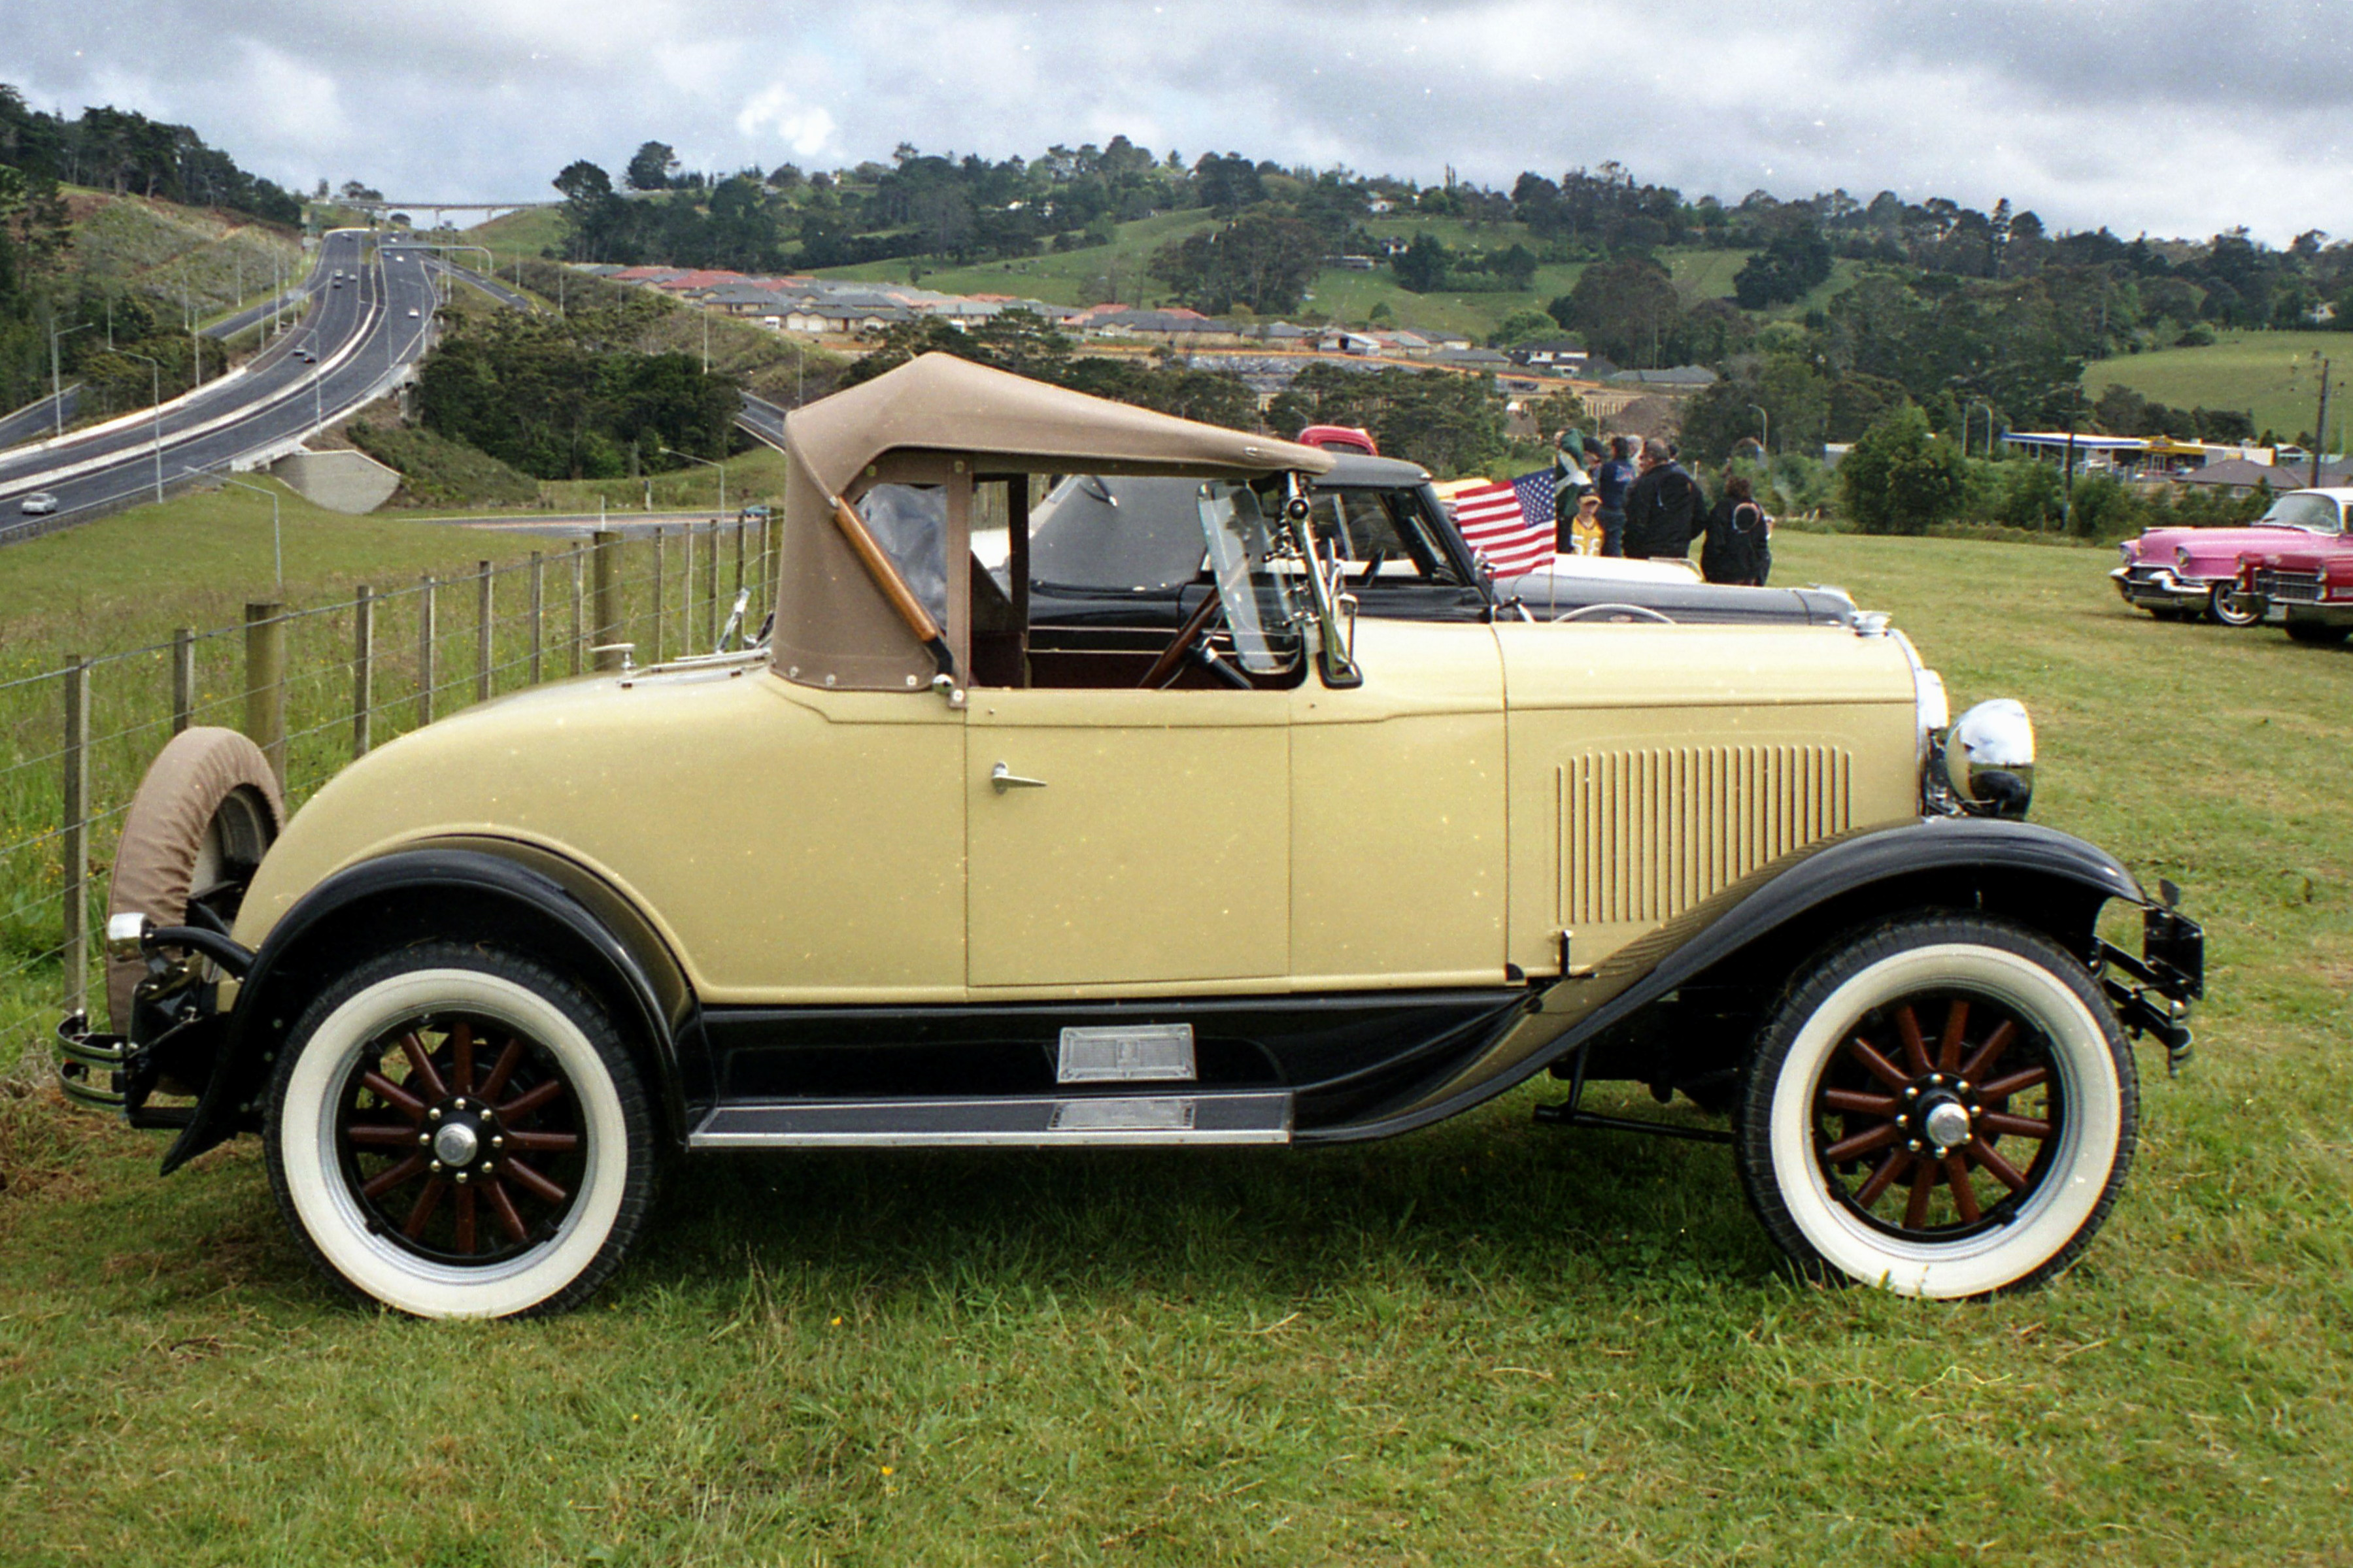 File:1929 Plymouth Roadster (17014028307).jpg - Wikimedia Commons